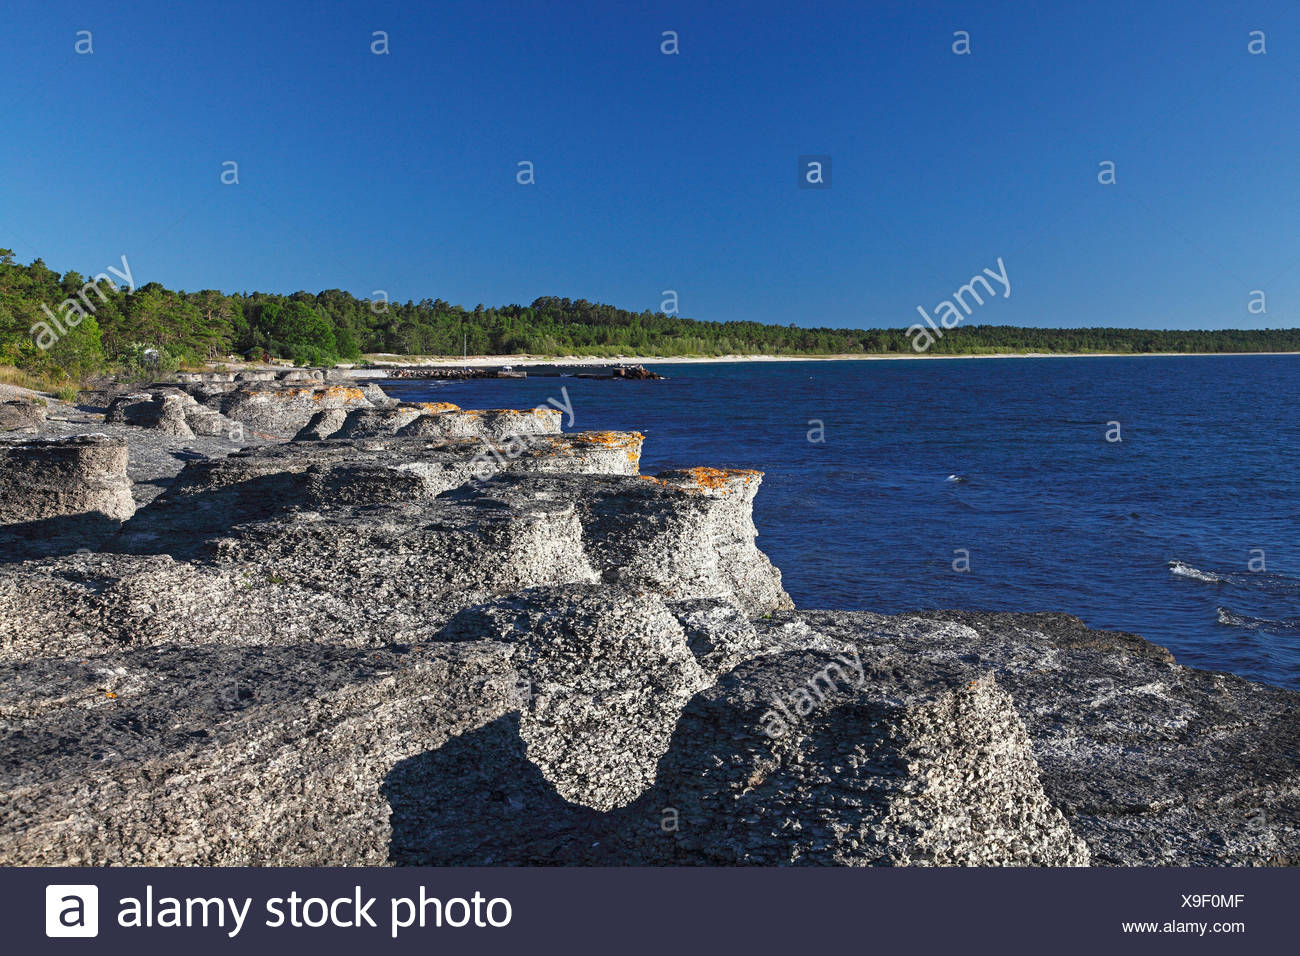 Kalksteinsaeulen an der Kueste bei Byrums Raukar, Schweden, Oeland, Byrums Raukar | chalkstone pillars at the coast at Byrums Ra - Stock Image